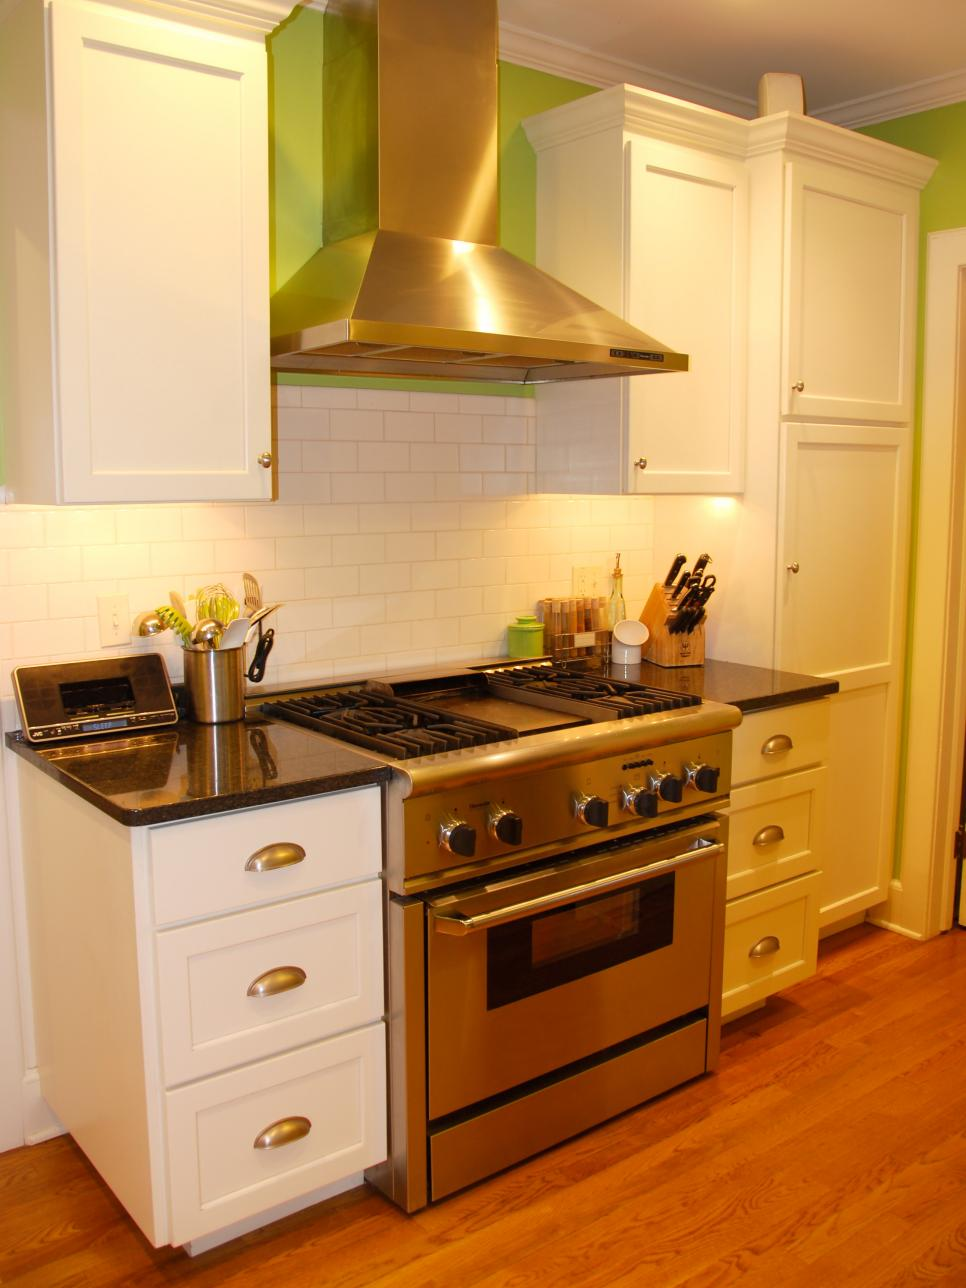 Innovative Small Kitchen Design Ideas | HGTV on Small Kitchen Remodeling Ideas  id=22258